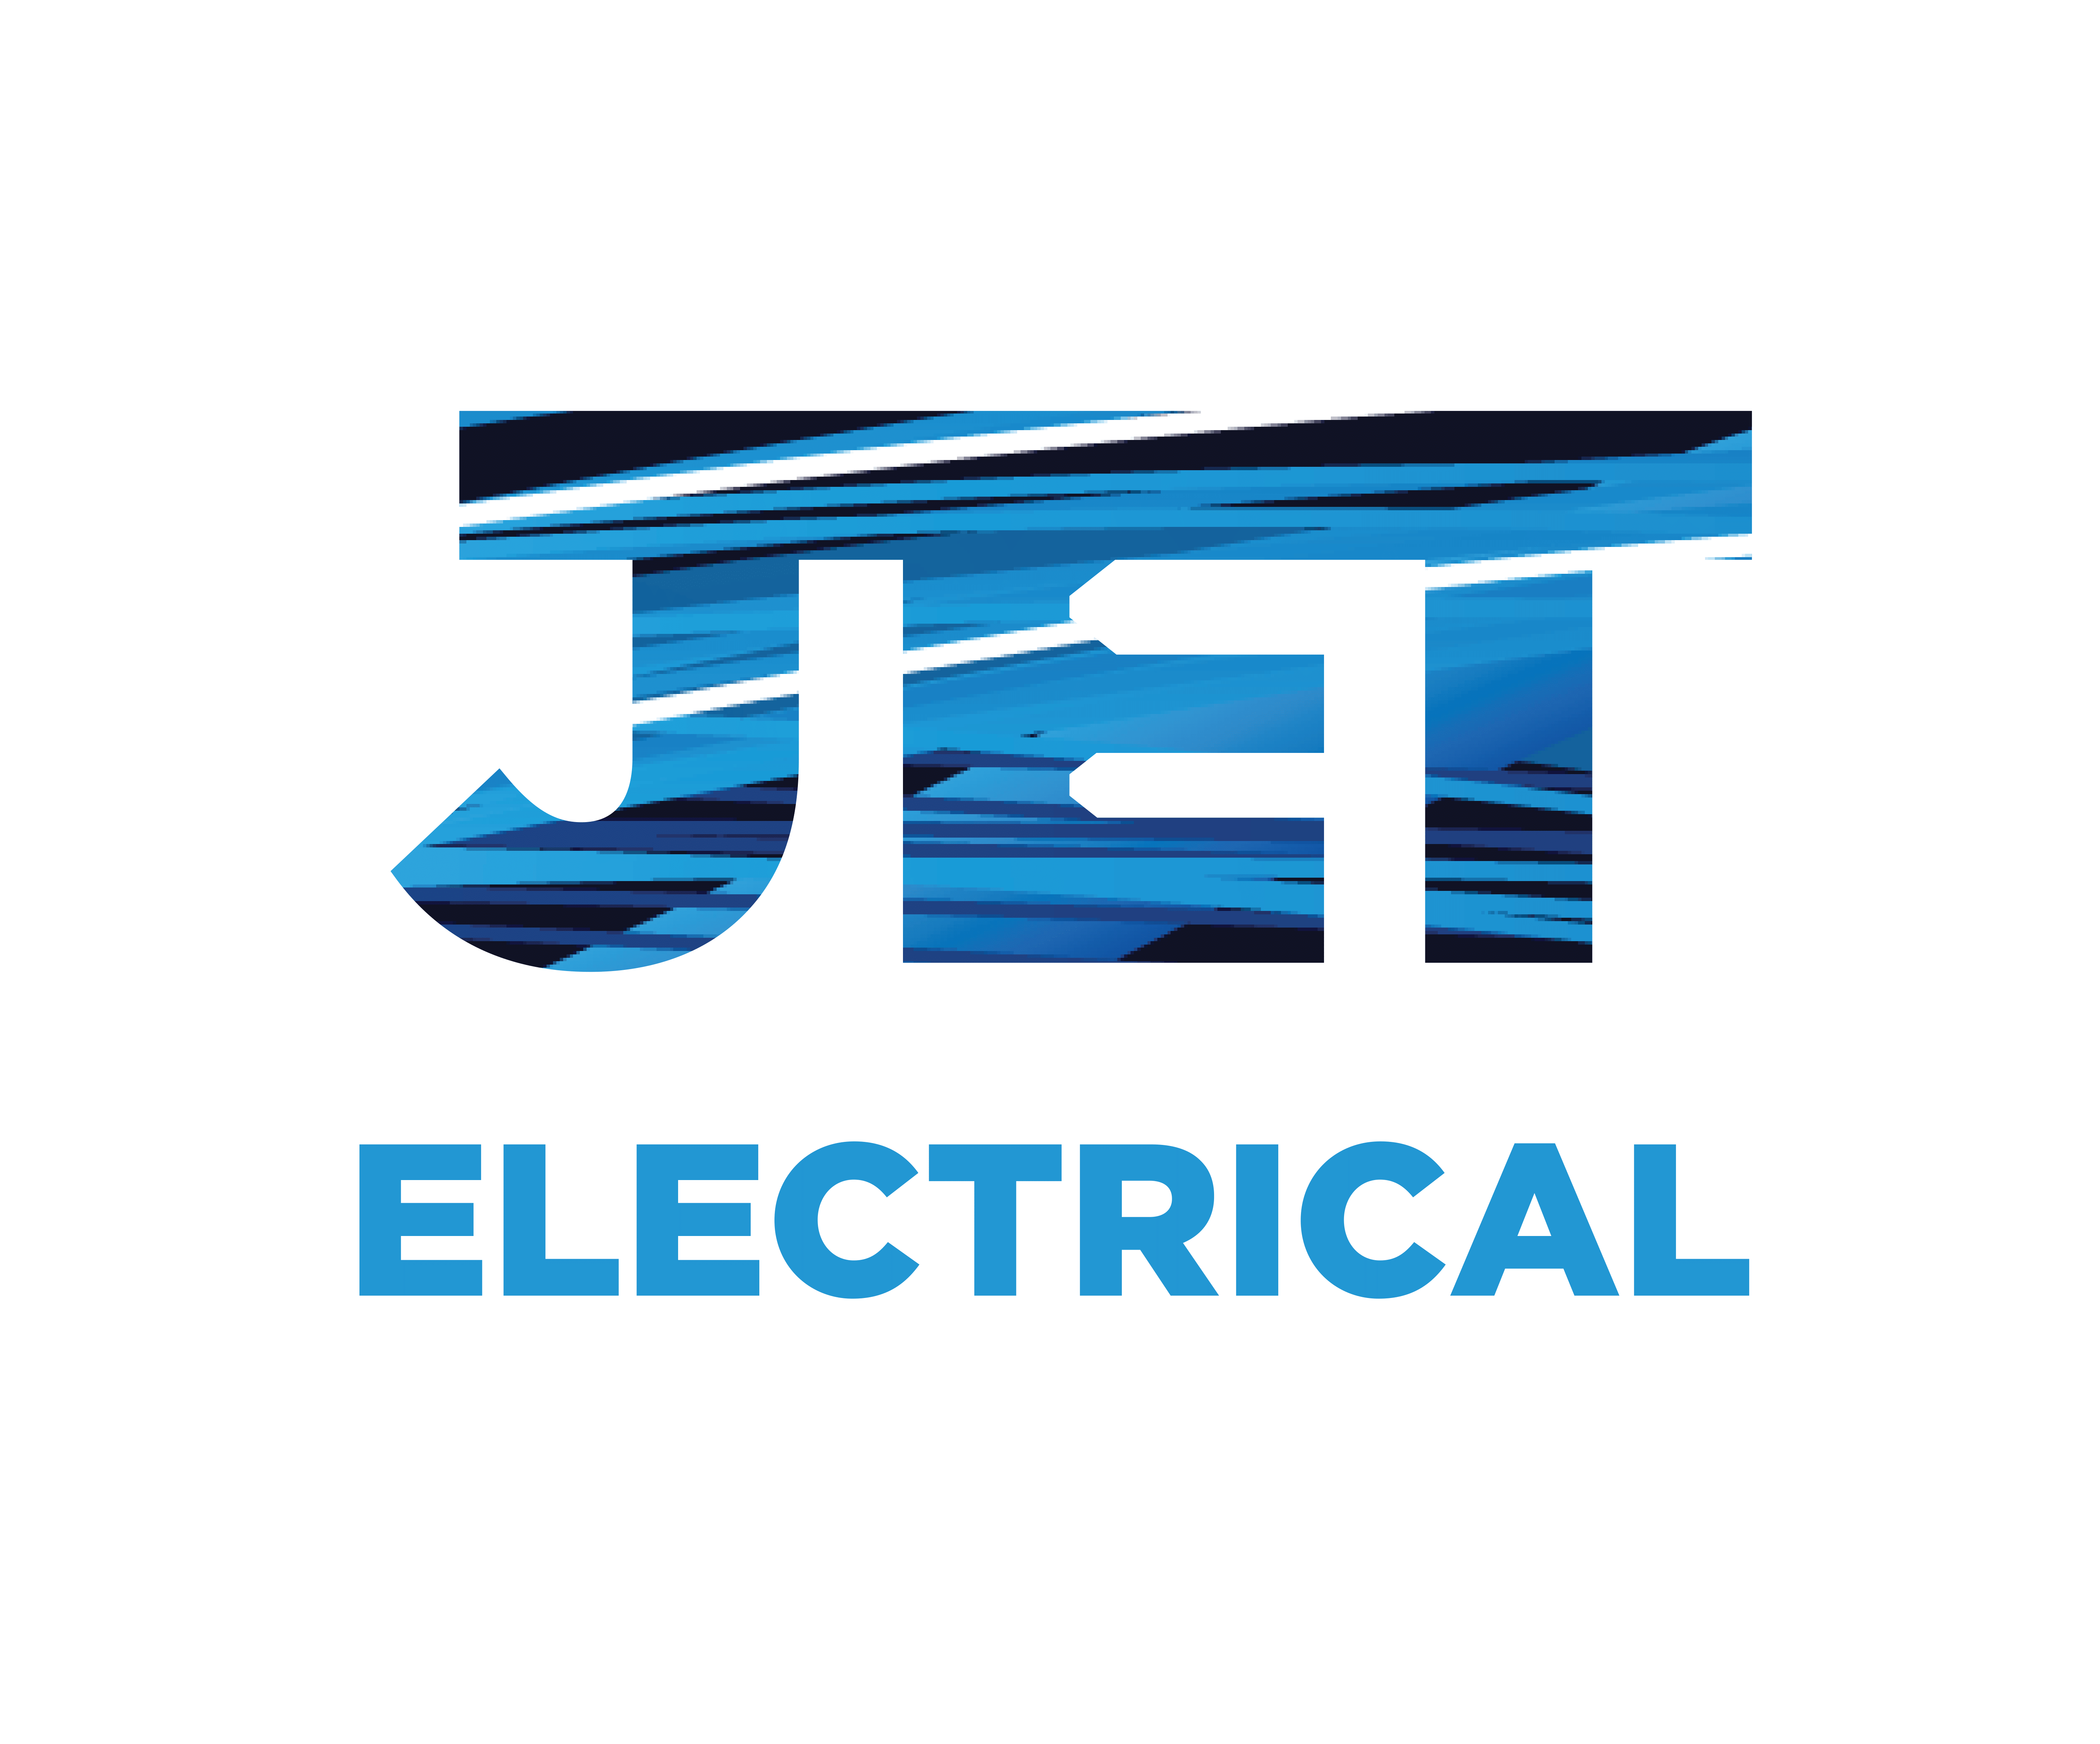 JET ELCTRICAL LOGO